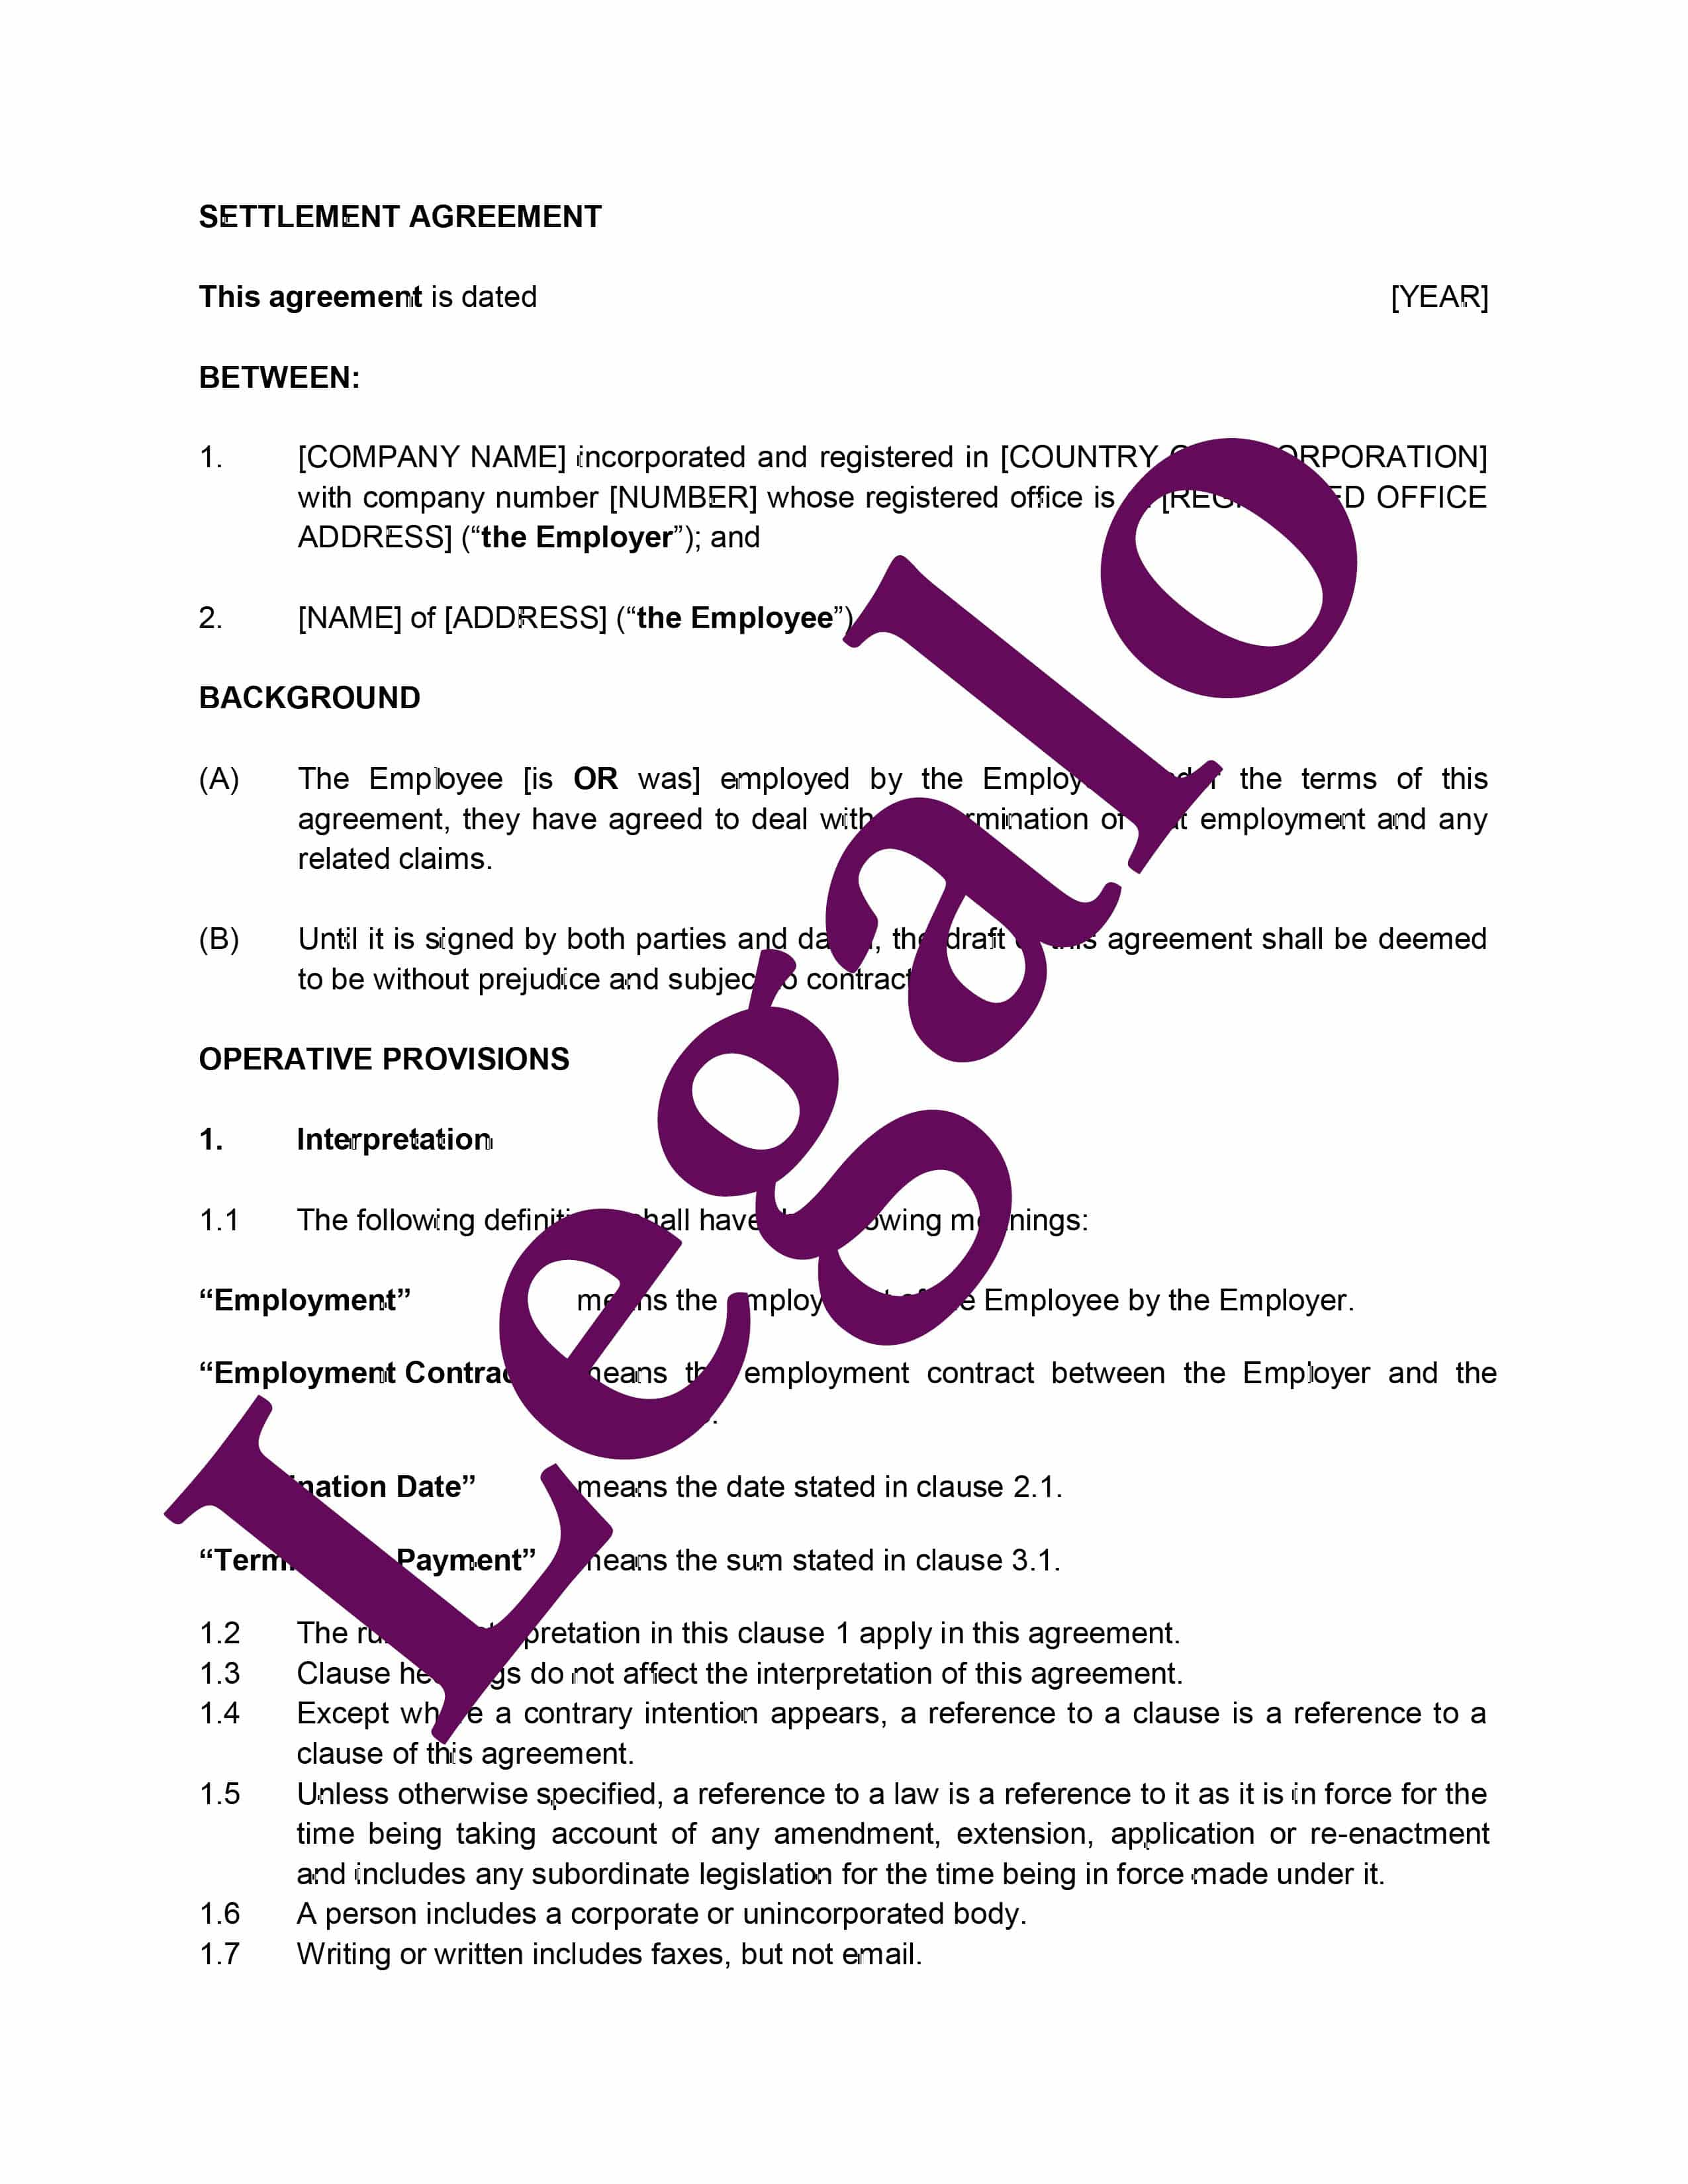 settlement agreement preview image page 1